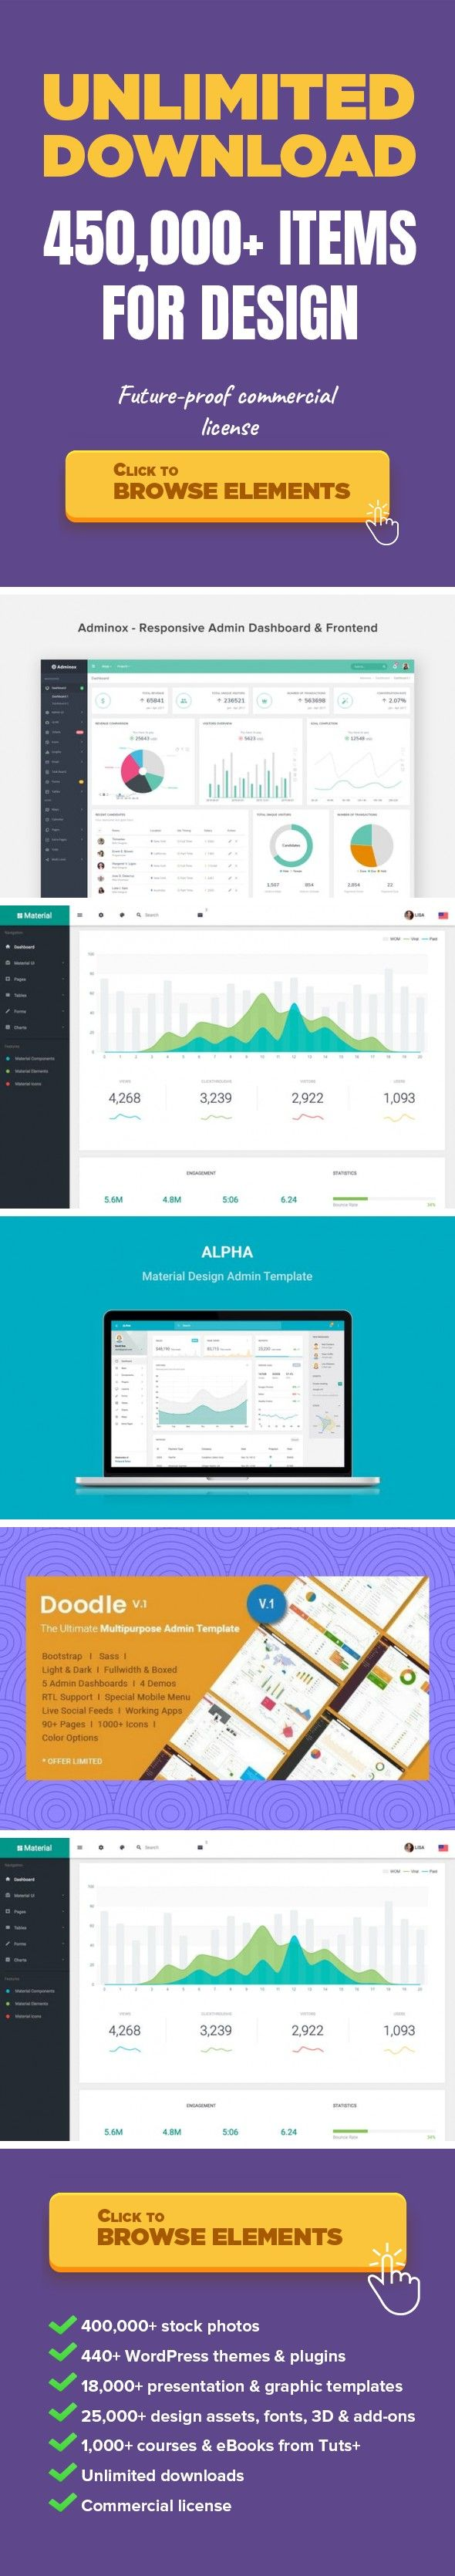 Adminox - Responsive Admin Dashboard & Frontend Web Templates, Admin Templates admin, admin, dashboard, bootstrap, colorful, crm, ecommerce, flat, less, modern, responsive, ui, web, app, scss   Adminox is a premium, fully responsive web app UI kit. It has flat design and built with Bootstrap 3.3.7 & Bootstrap 4 alpha 6, HTML5, CSS3 and Jquery. It comes with bunch of reusable UI widgets, compon...